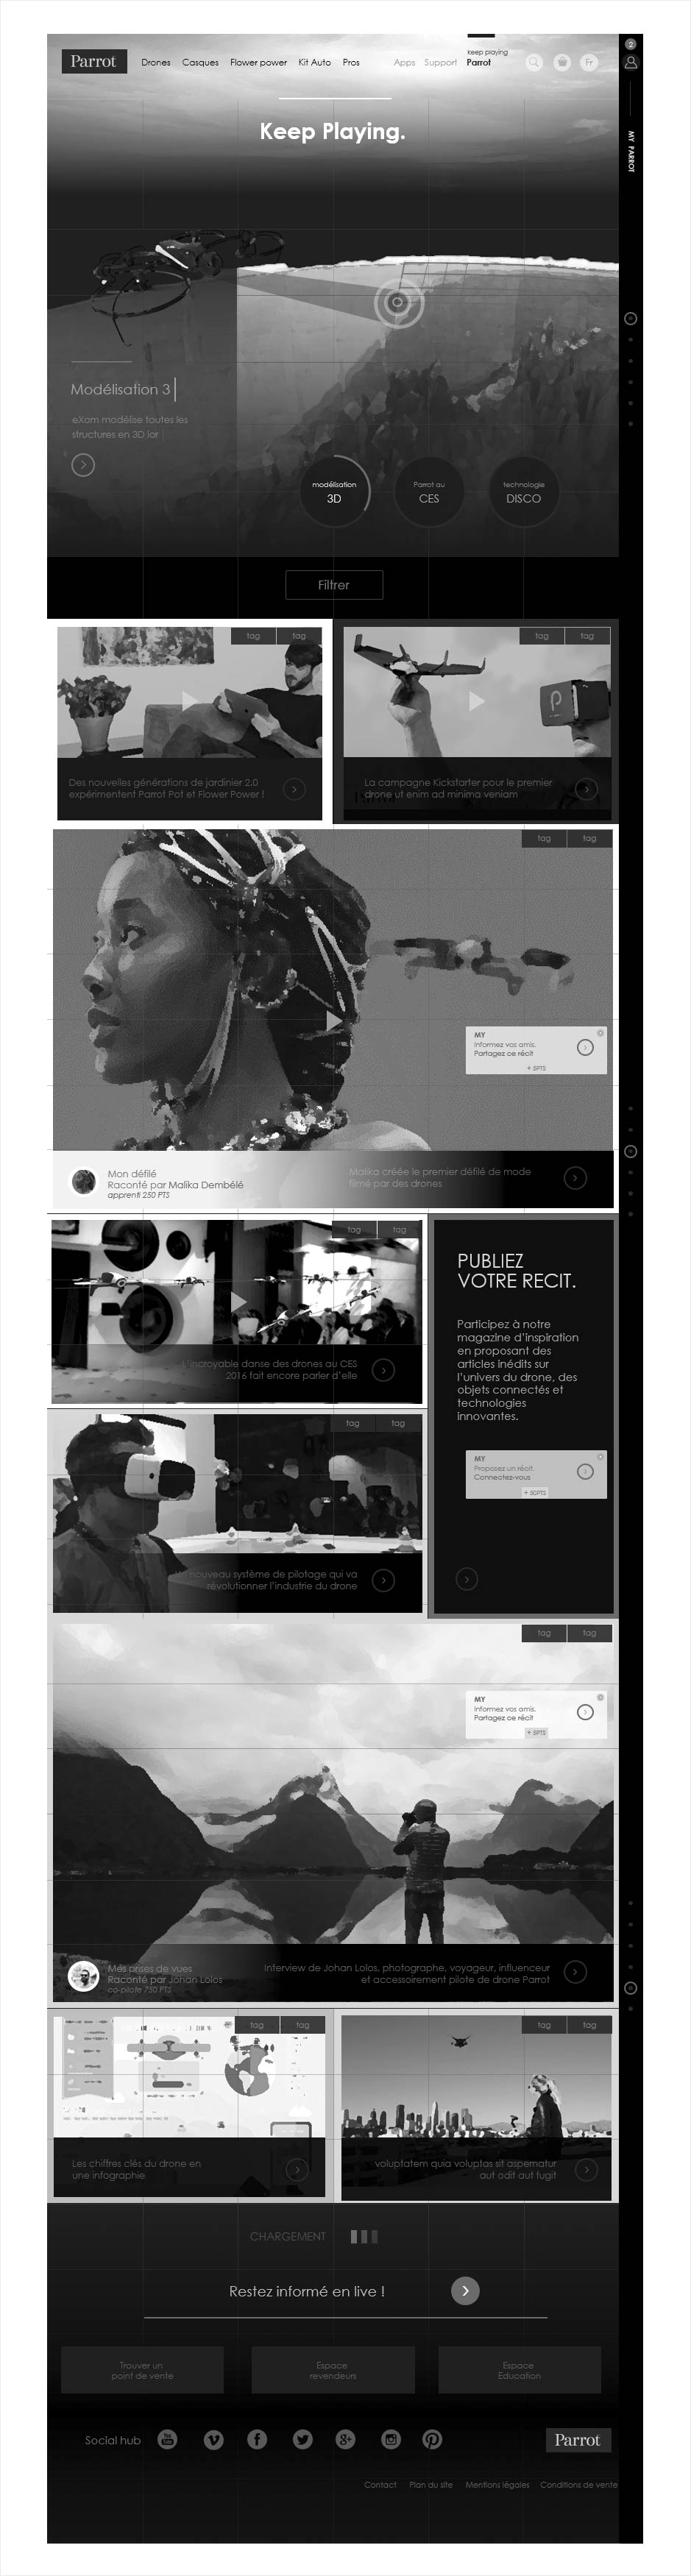 wireframe catalogue ecommerce parrot, magazine editorial